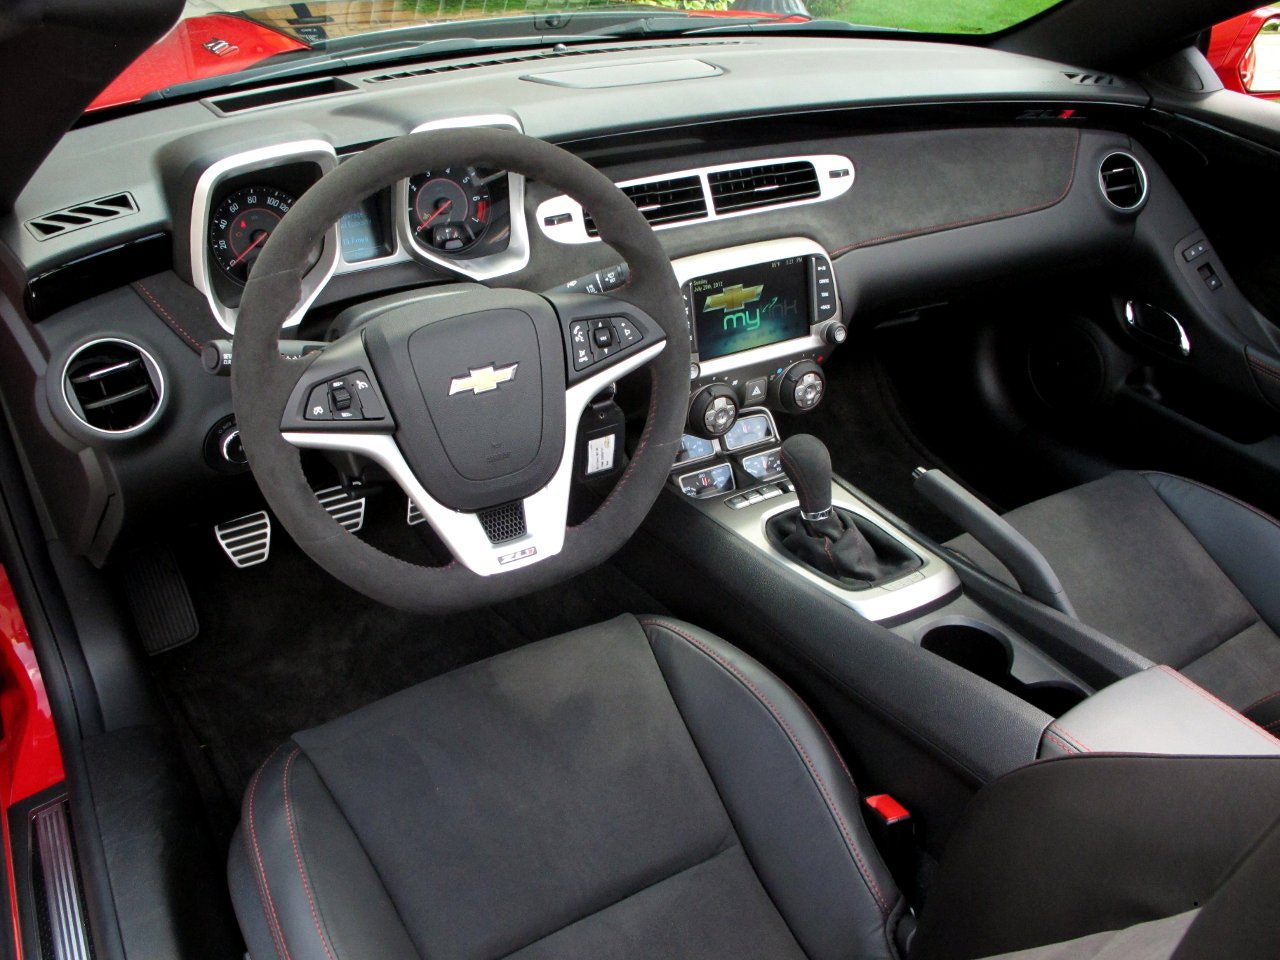 Chevrolet Camaro Interior 2013